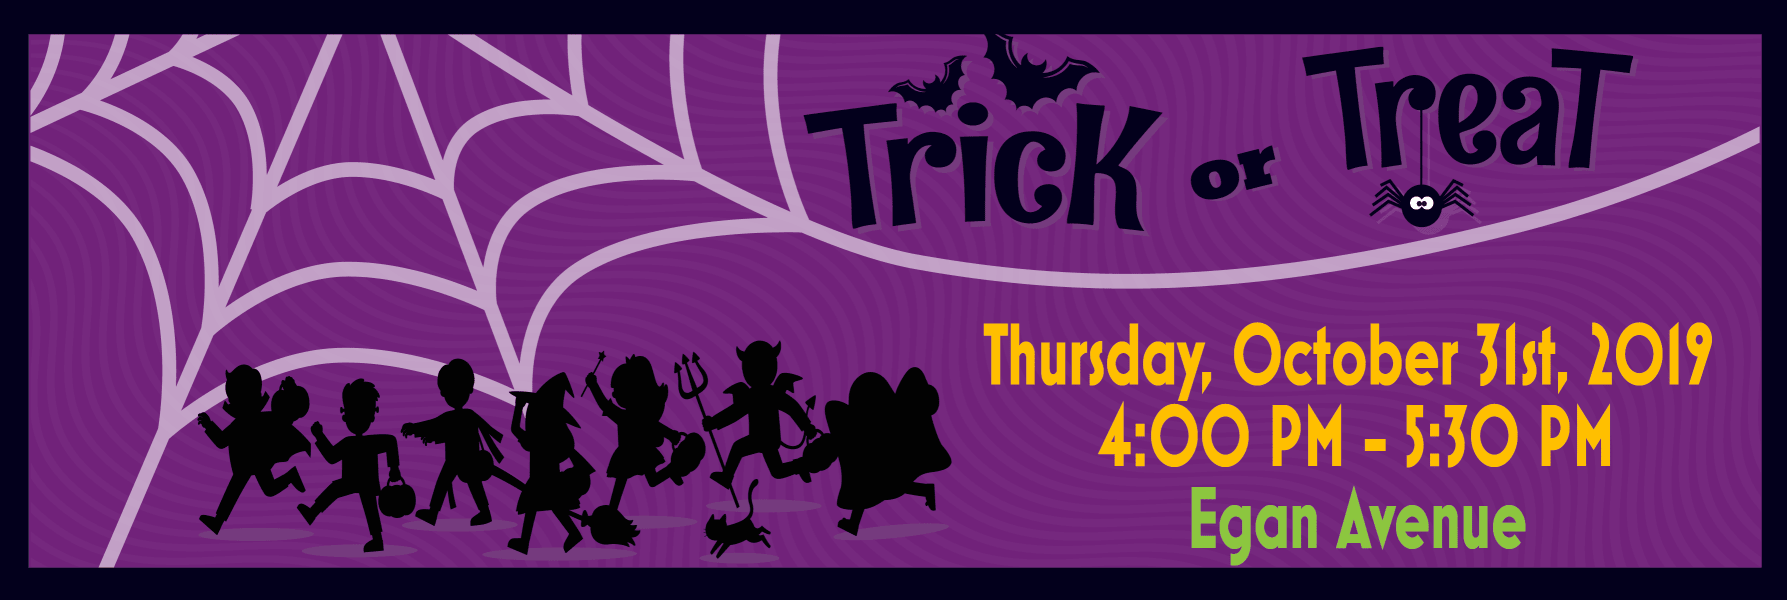 2019-Trick-or-Treat-Web-Banner-w1787.png